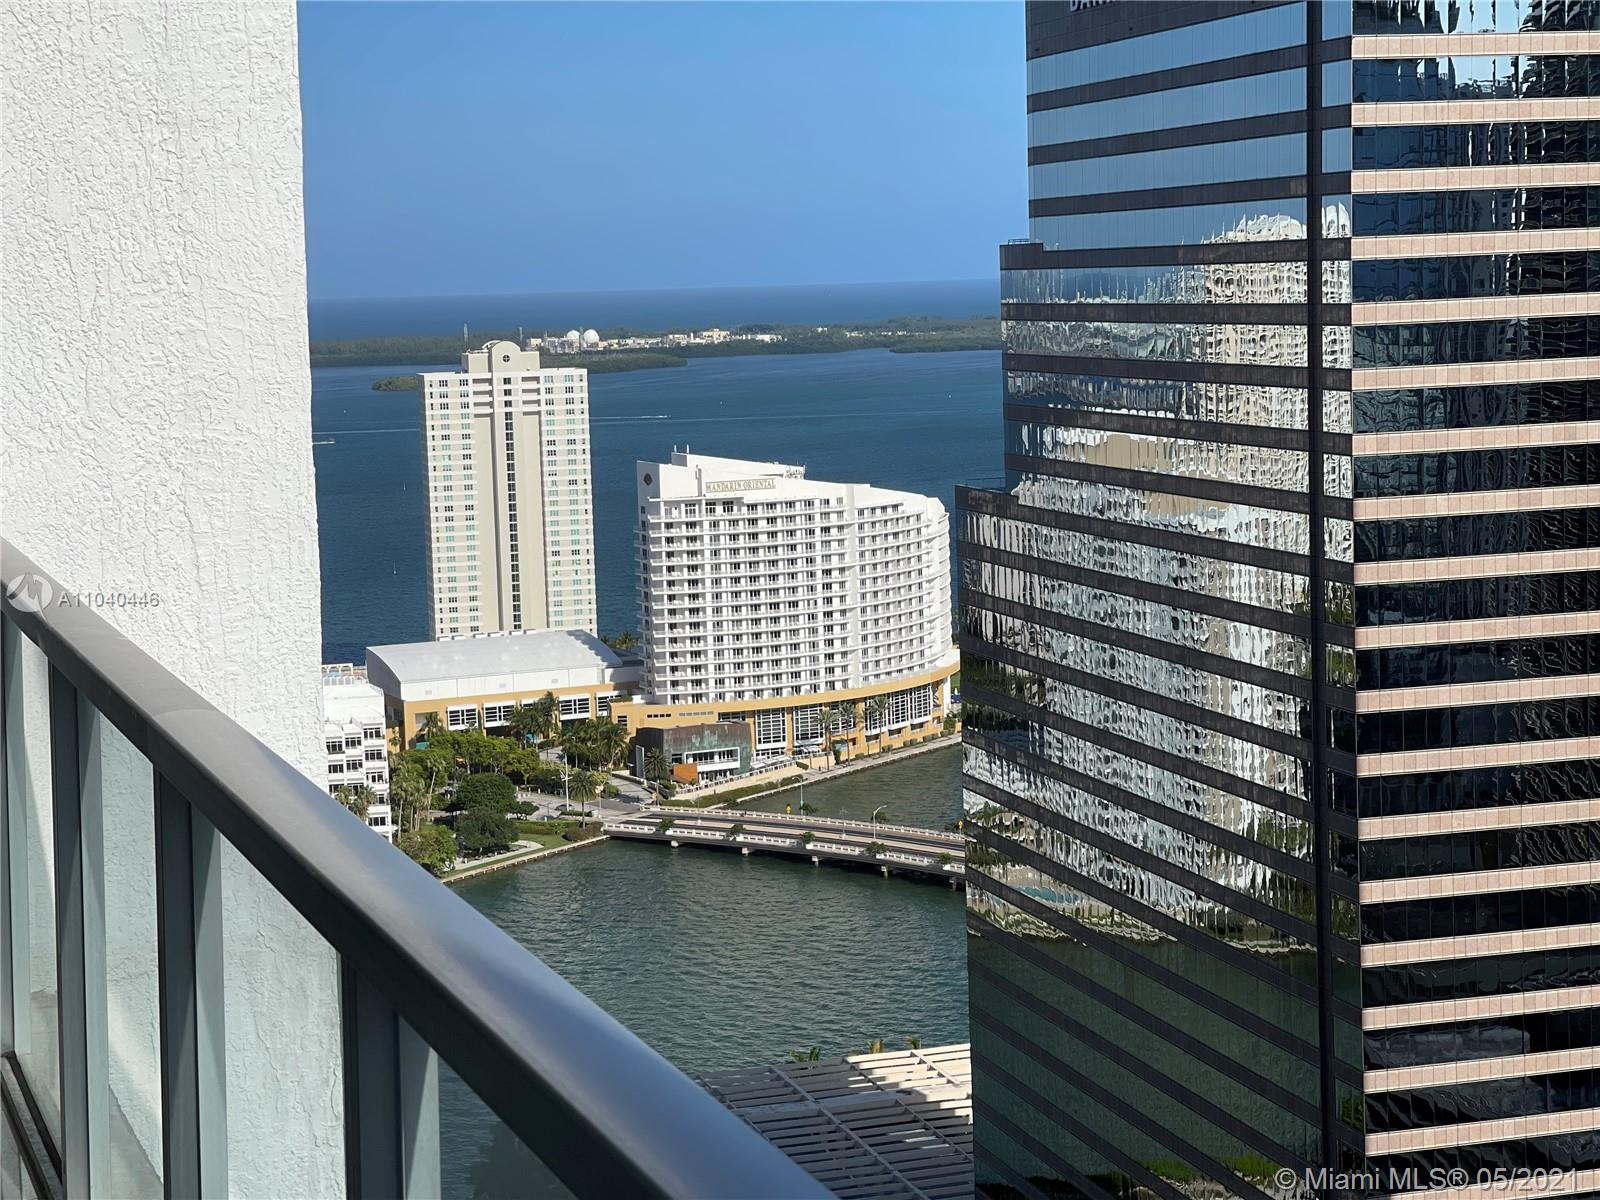 500 Brickell East Tower #3908 - 55 SE 6 ST. #3908, Miami, FL 33131